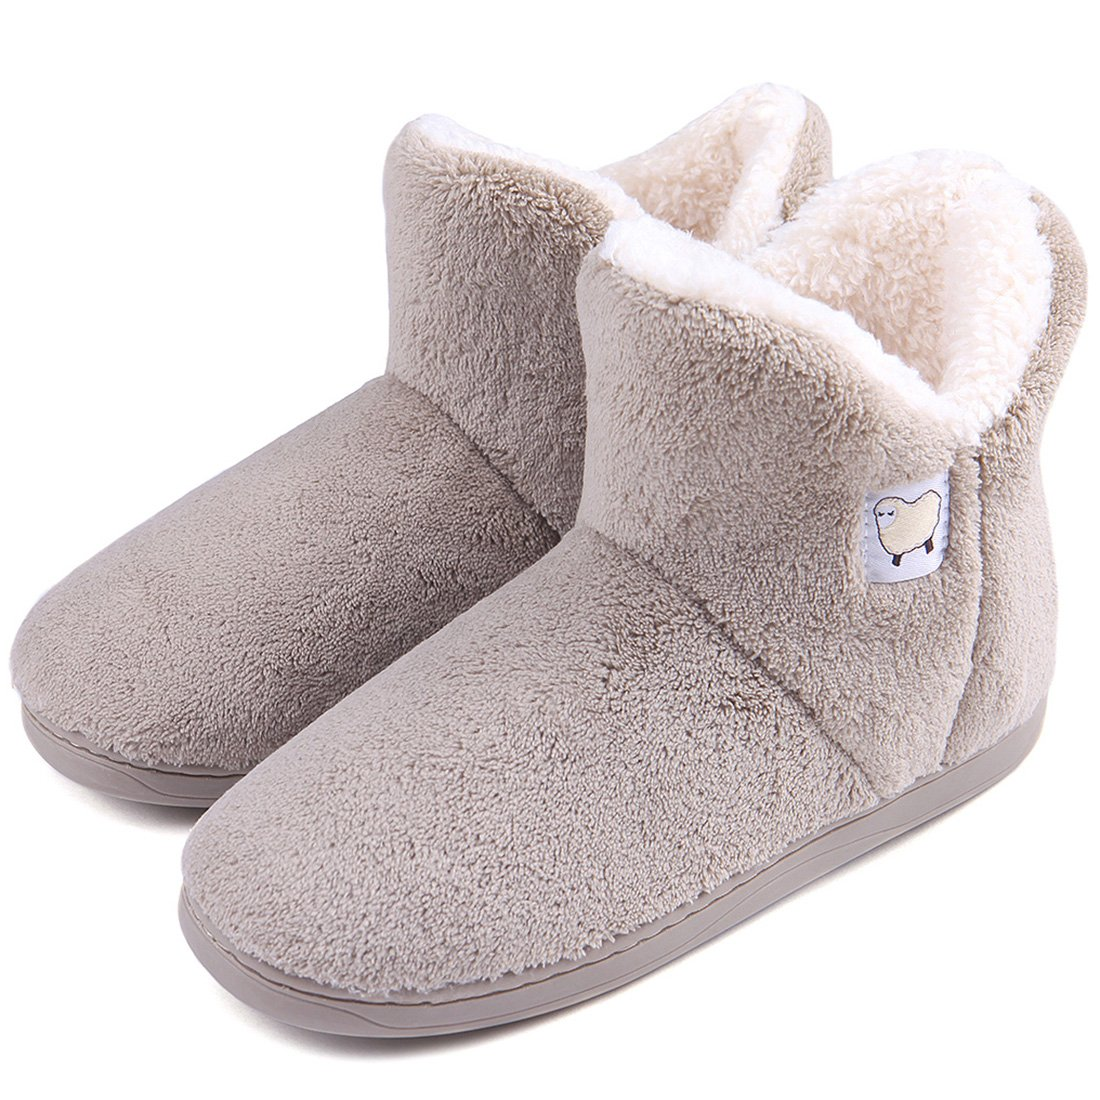 Dailybella Women Warm Plush Slipper Boots Cozy Wool Indoor Outdoor Home Shoes (7-7.5 B(M) US, Camel)